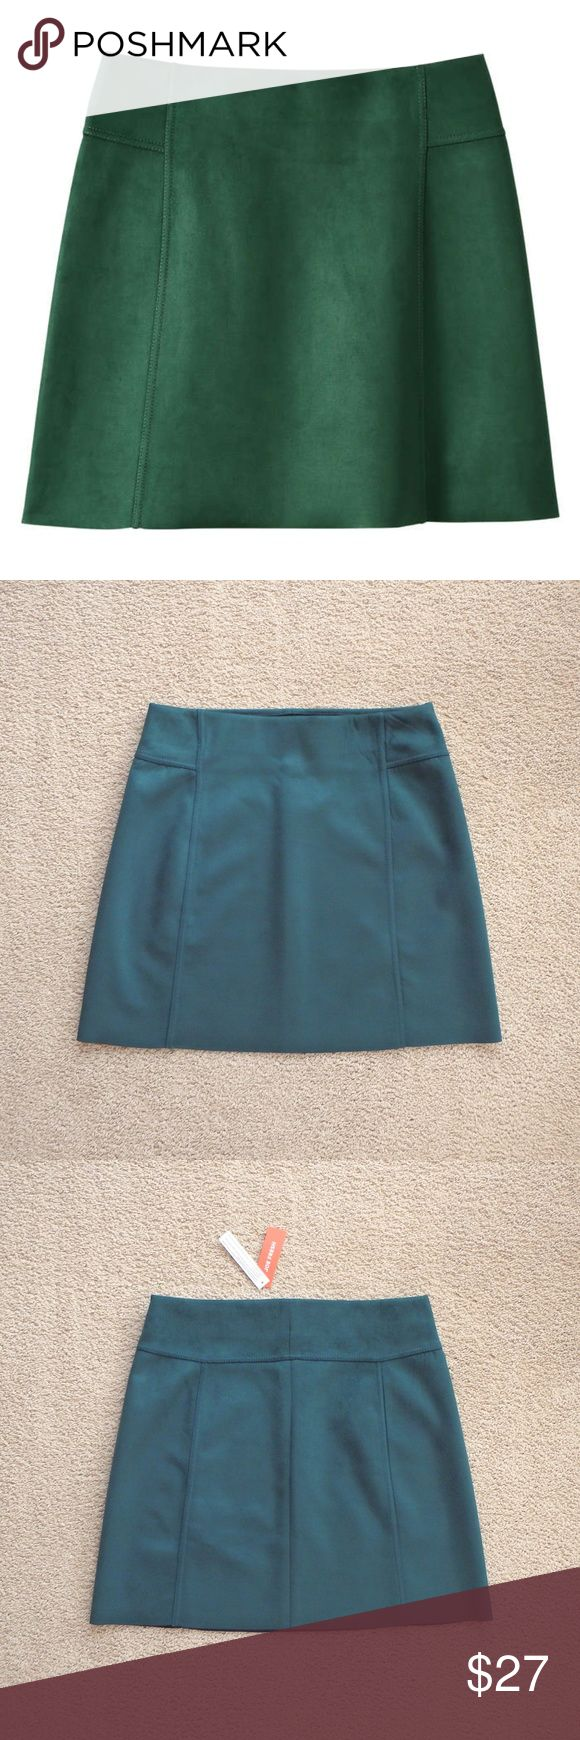 Faux Suede Mini Skirt in Emerald Faux suede mini skirt - Smooth finish and seam detail - Pull-on skirt - Elastic waist - Faux Suede, 90% polyester/10% spandex - Color is best represented in picture 1 - Measurements: Length: 18 1/4'', Waist: 15'', Hips: 19 3/4''- Condition: New with tags - Smoke free, pet free home - Price is negotiable. Joe Fresh Skirts Mini